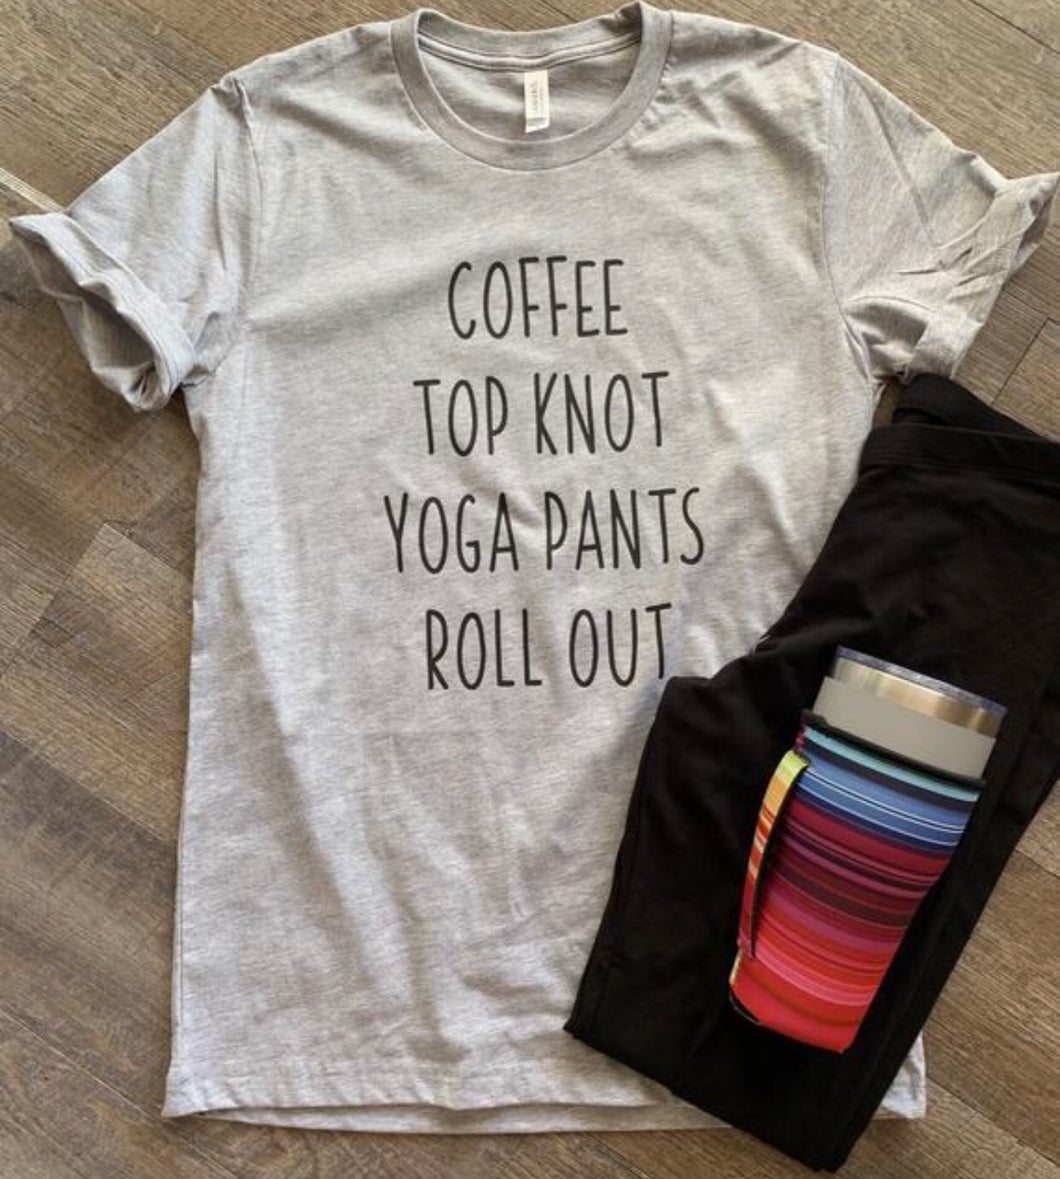 Coffee top knot yoga pants roll out. Funny custom women's graphic tee tshirt. Mother's Day gift. - Mavictoria Designs Hot Press Express